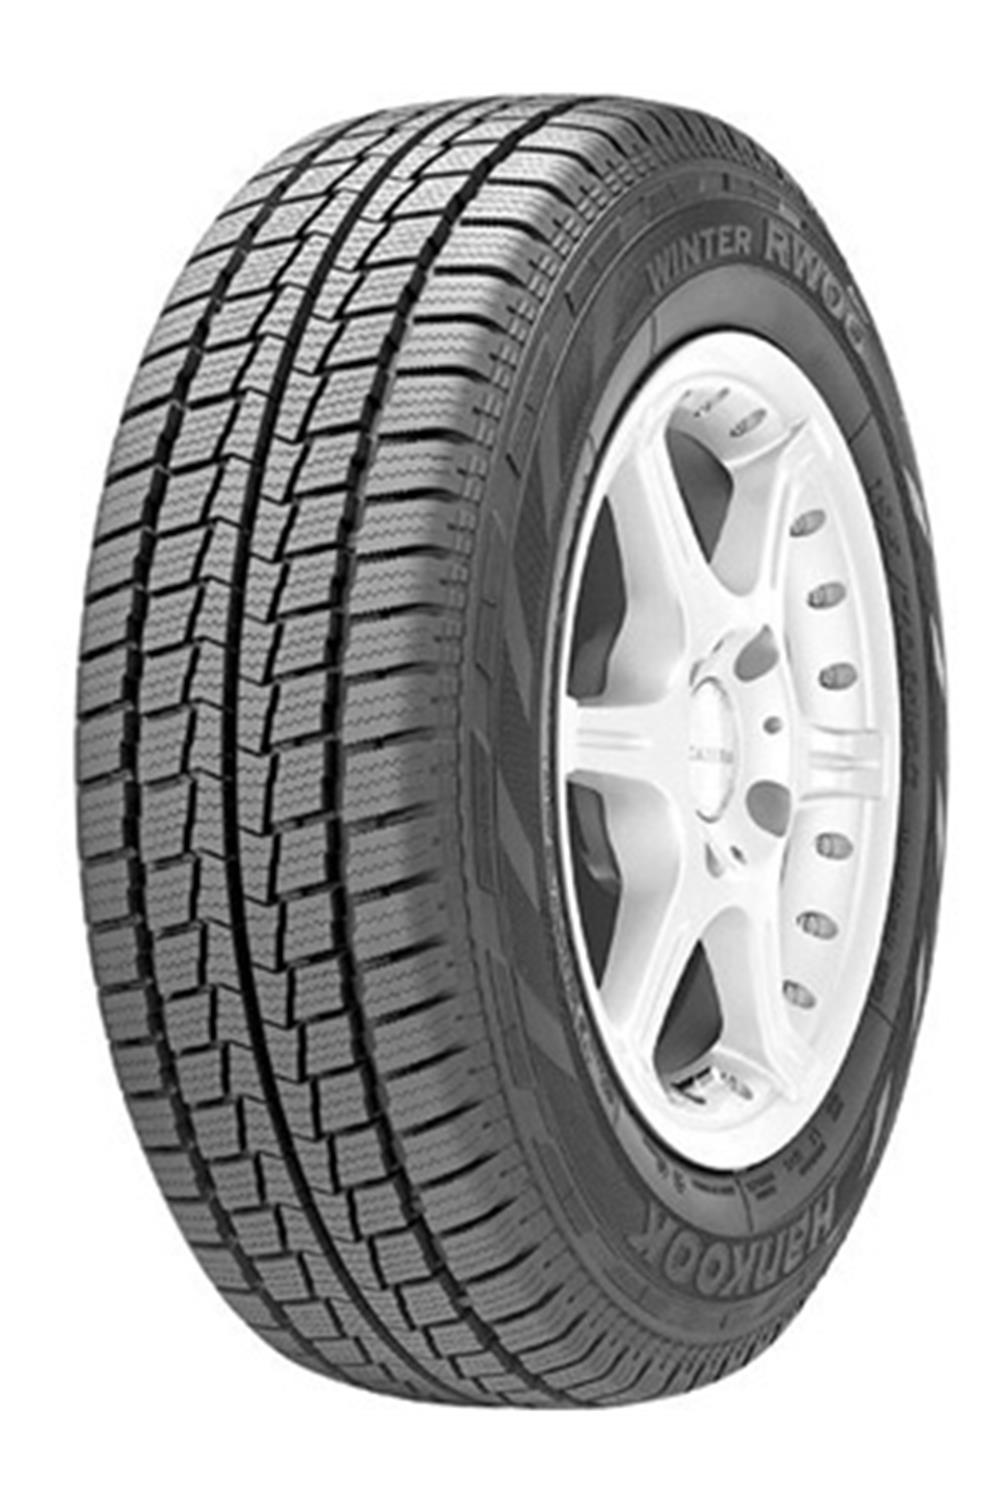 215/70R15C 109R Winter RW06 Hankook